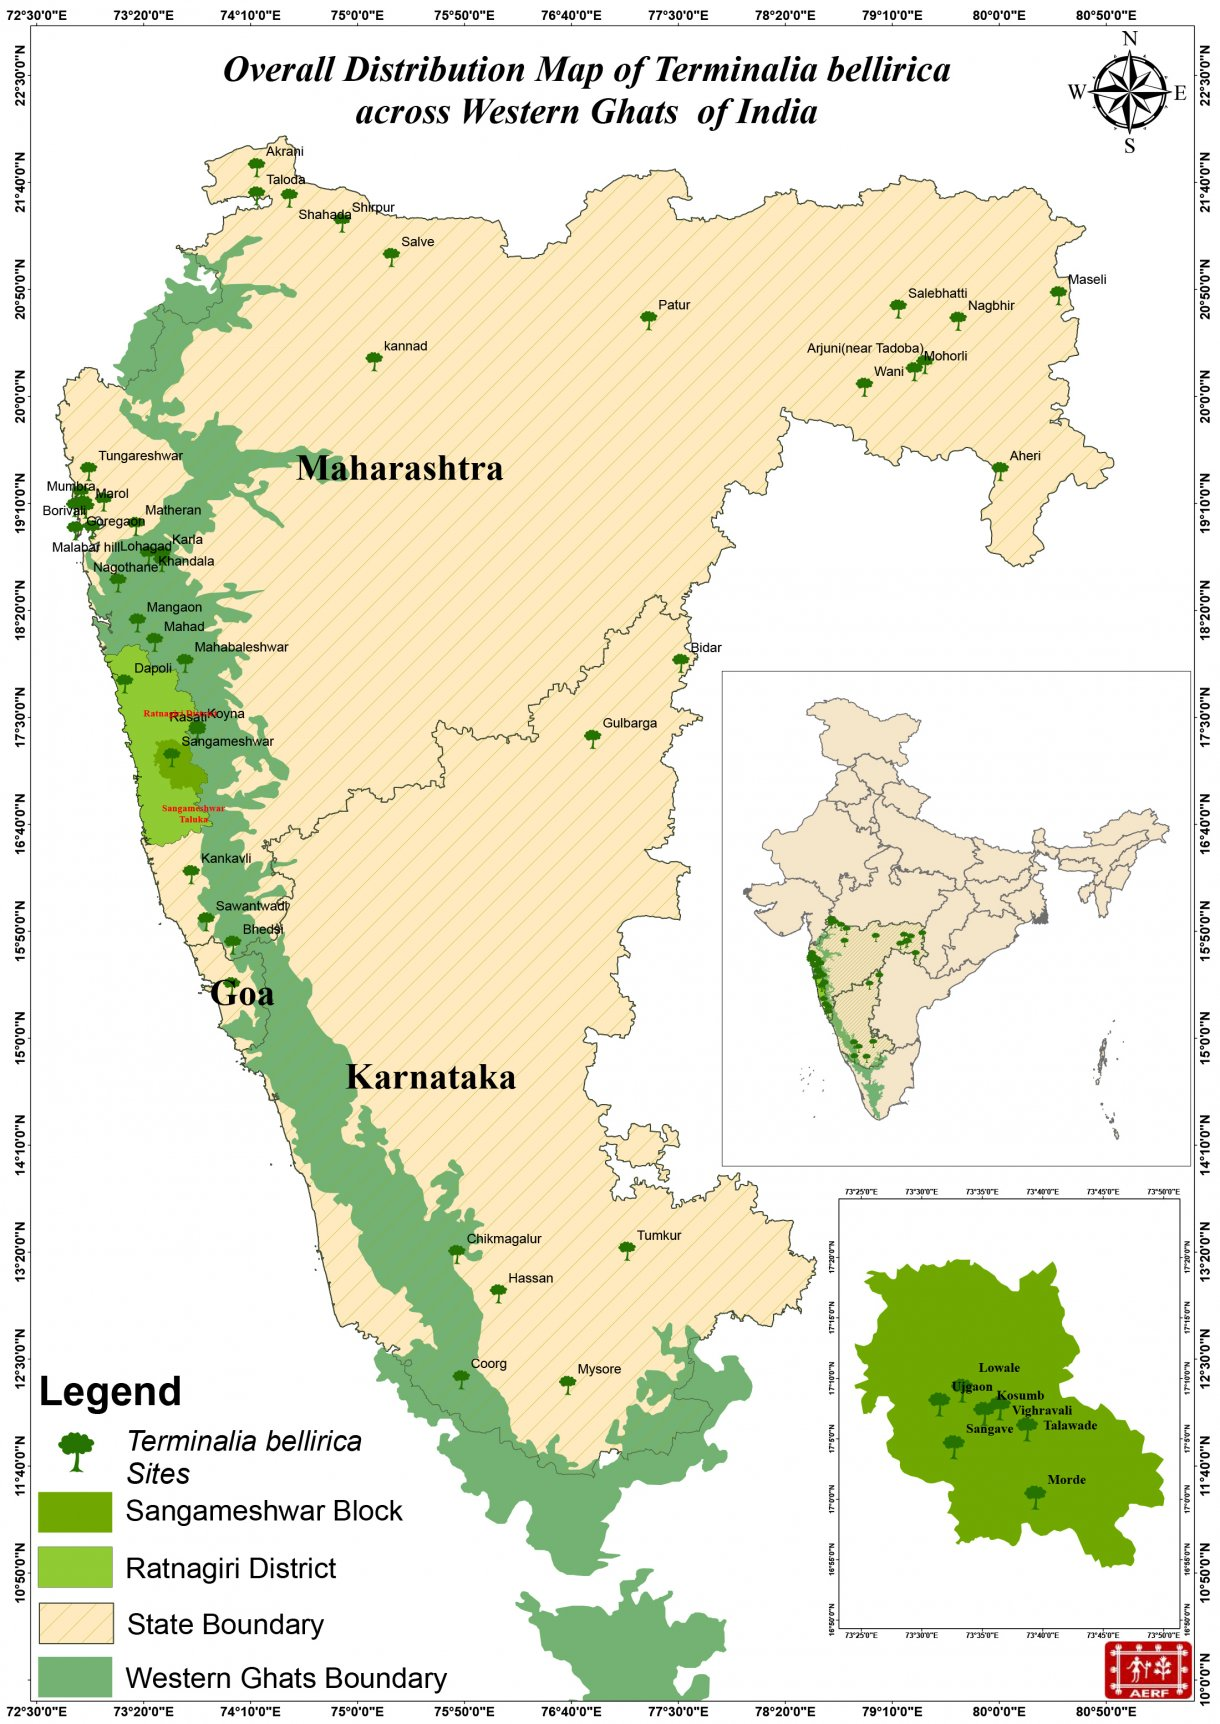 Overall Distribution Map of Terminalia bellirica across Western Ghats of India - AERF